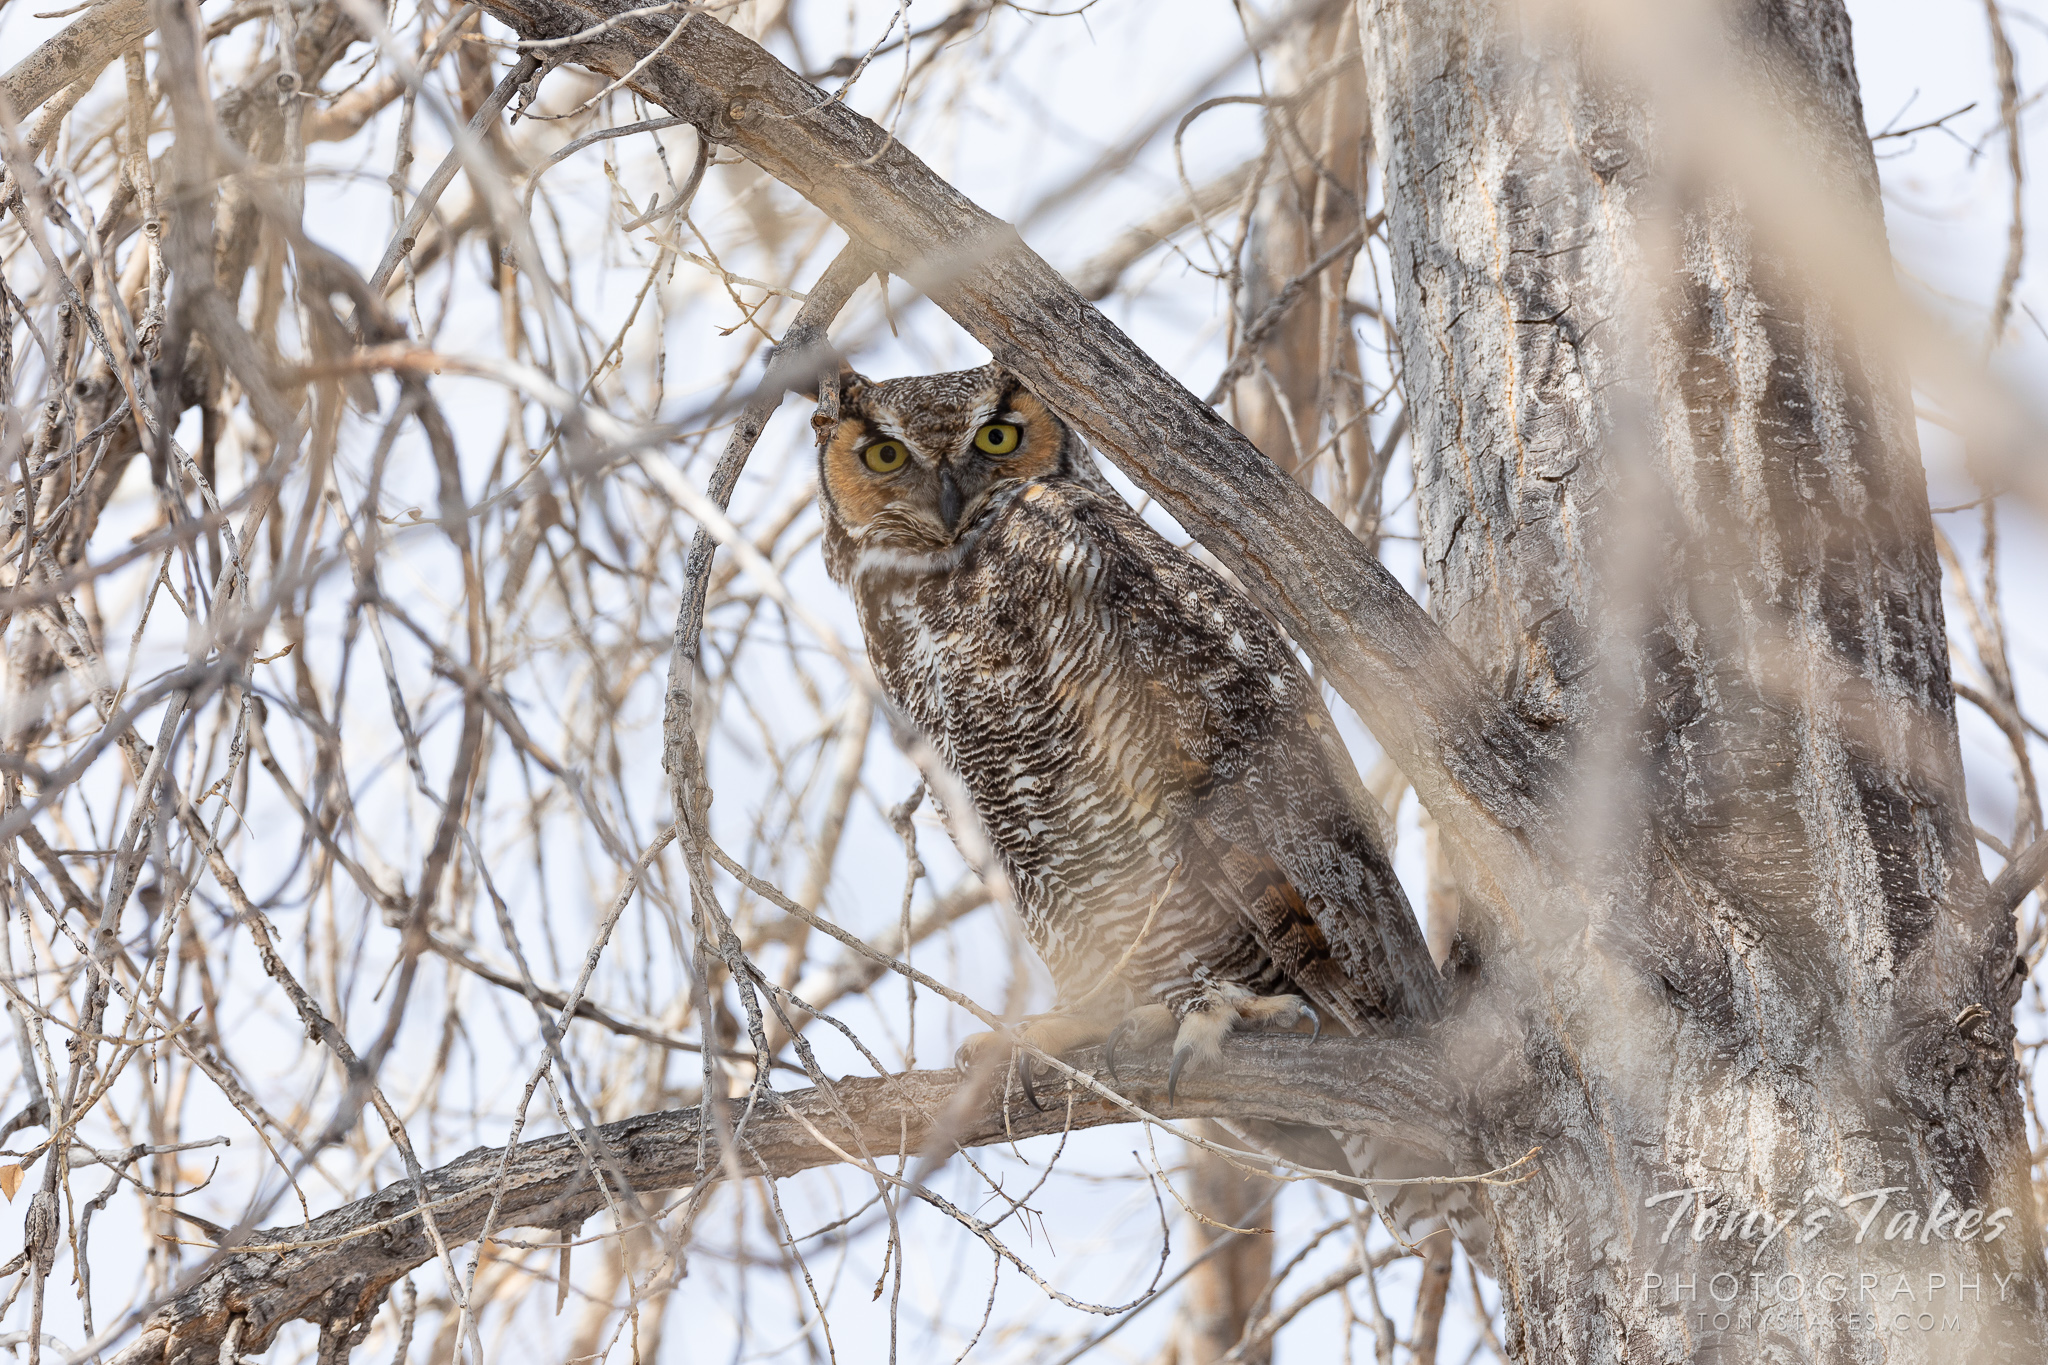 A great horned owl keeps close watch from its perch. Taken in Thornton, Colorado. (© Tony's Takes)